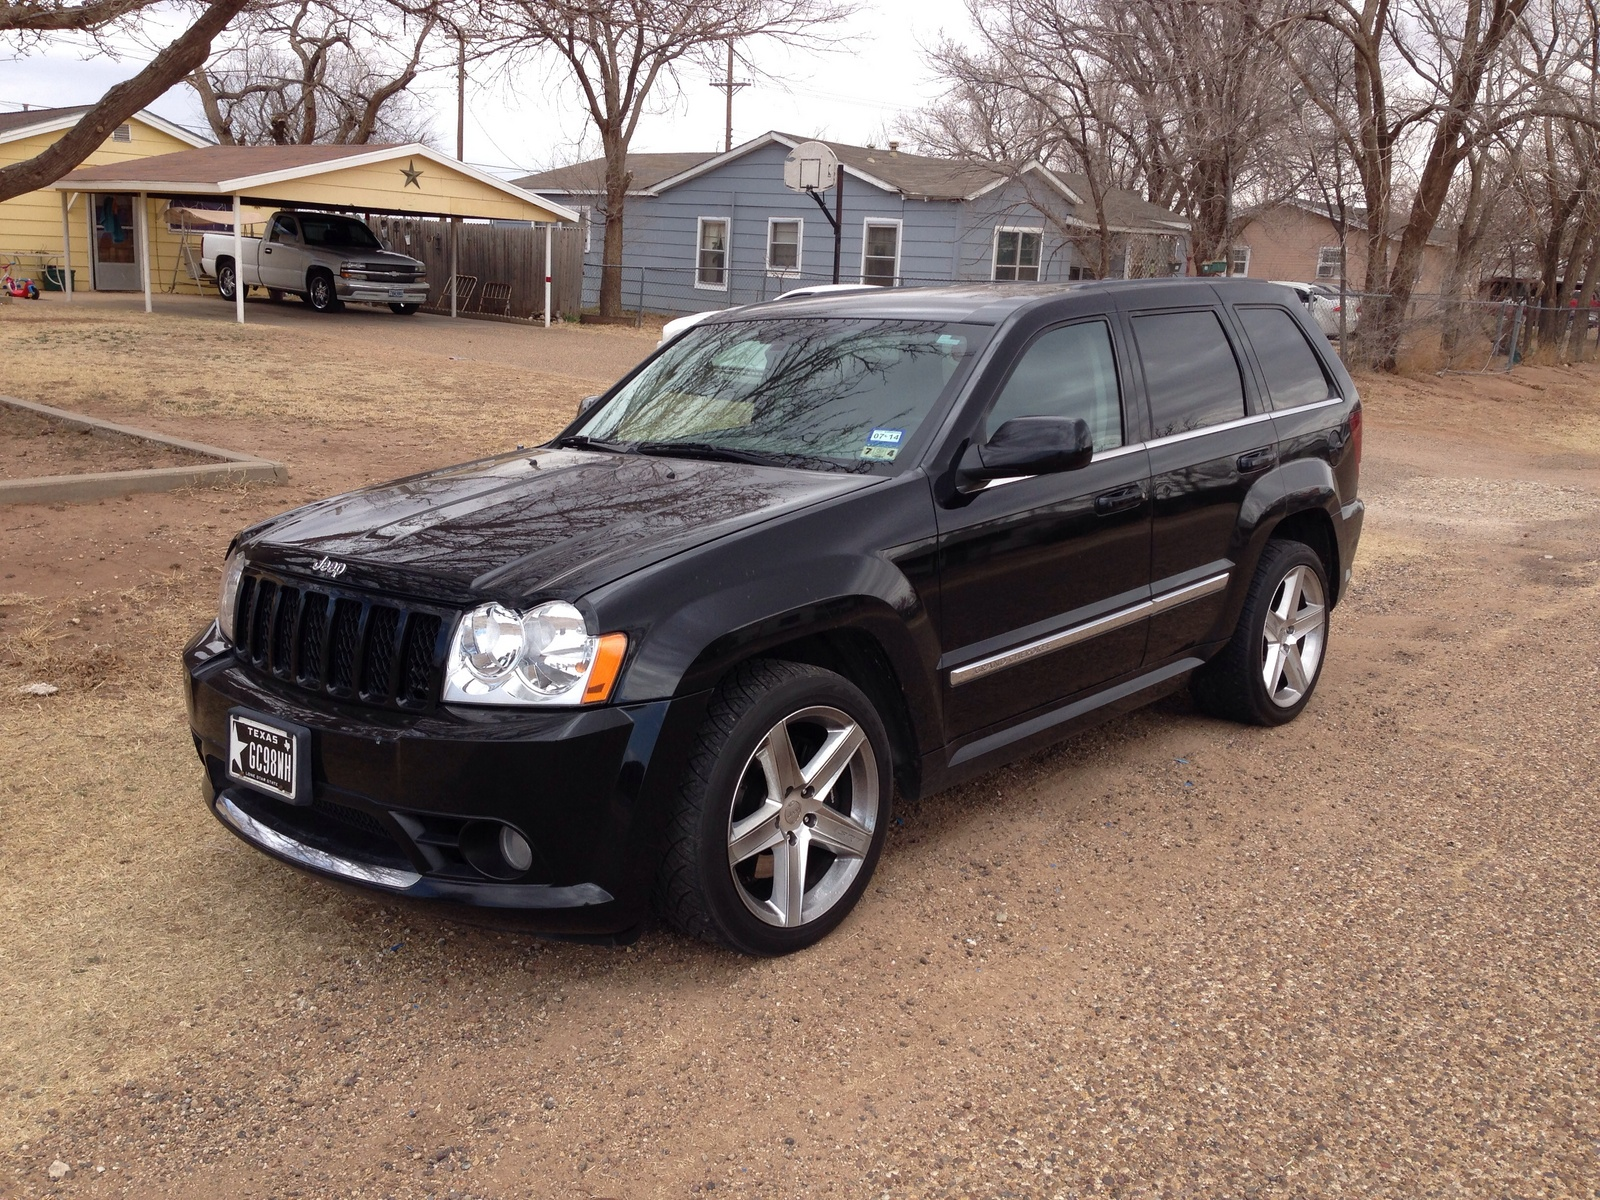 2007 Jeep Grand Cherokee - Pictures - CarGurus